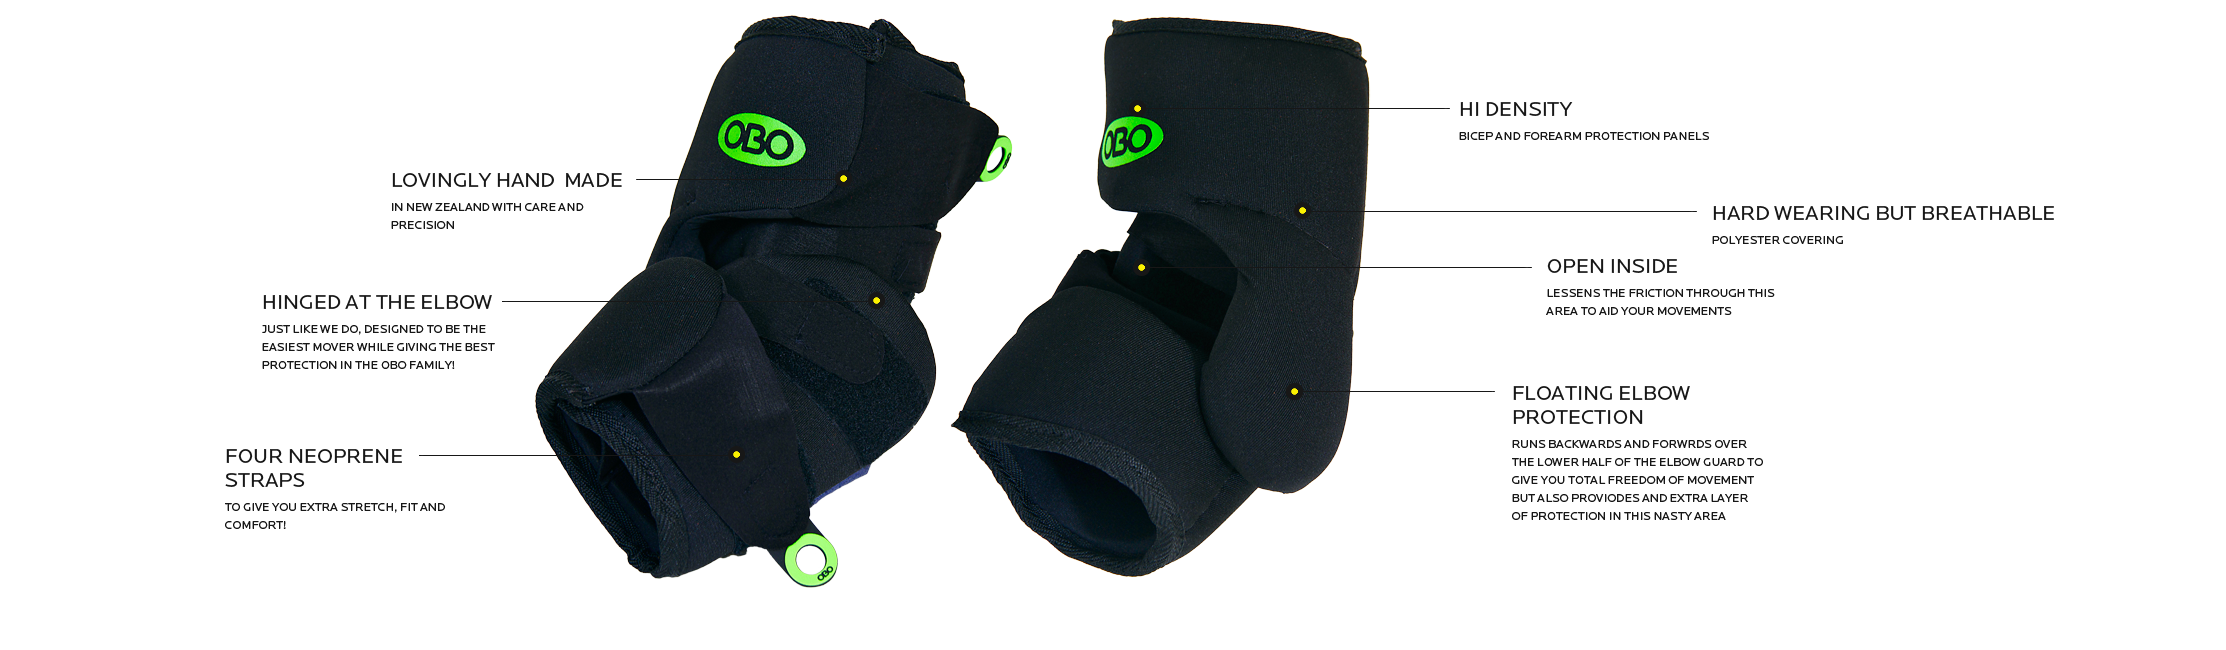 Elbow Guard Lite